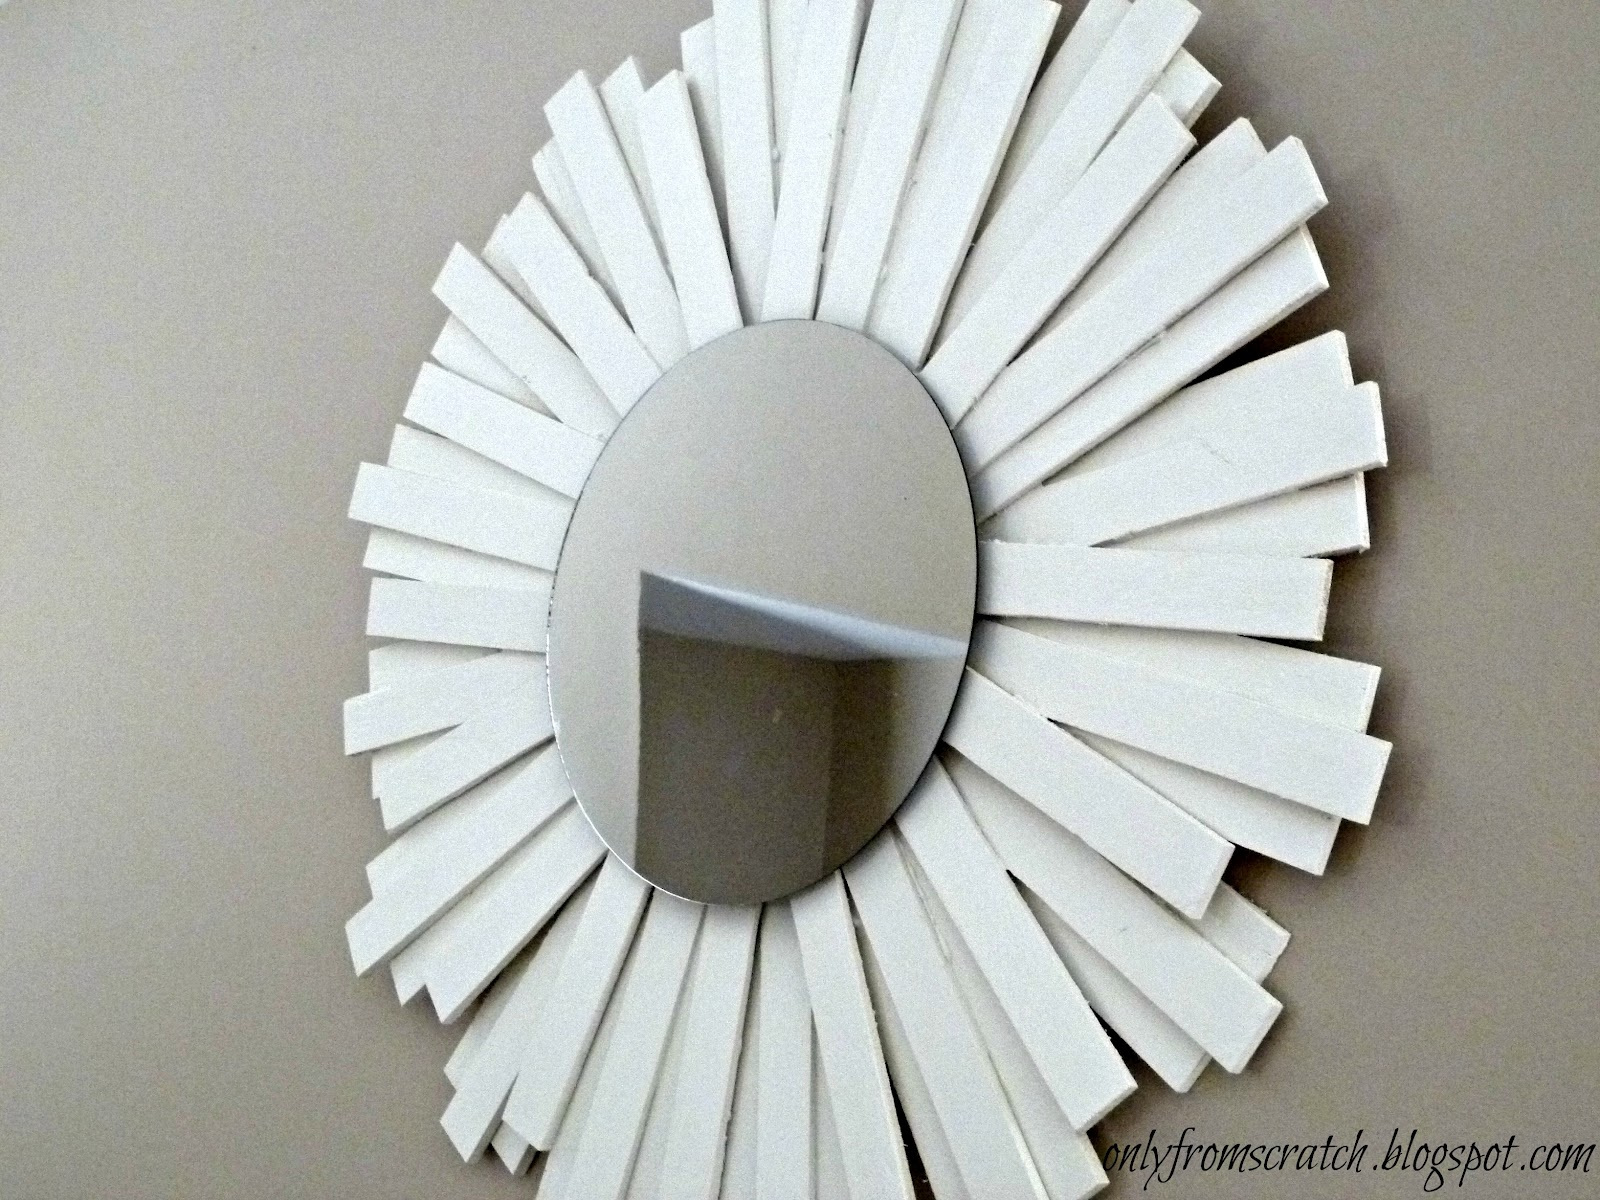 Only From Scratch Sunburst Mirror With Wooden Shims